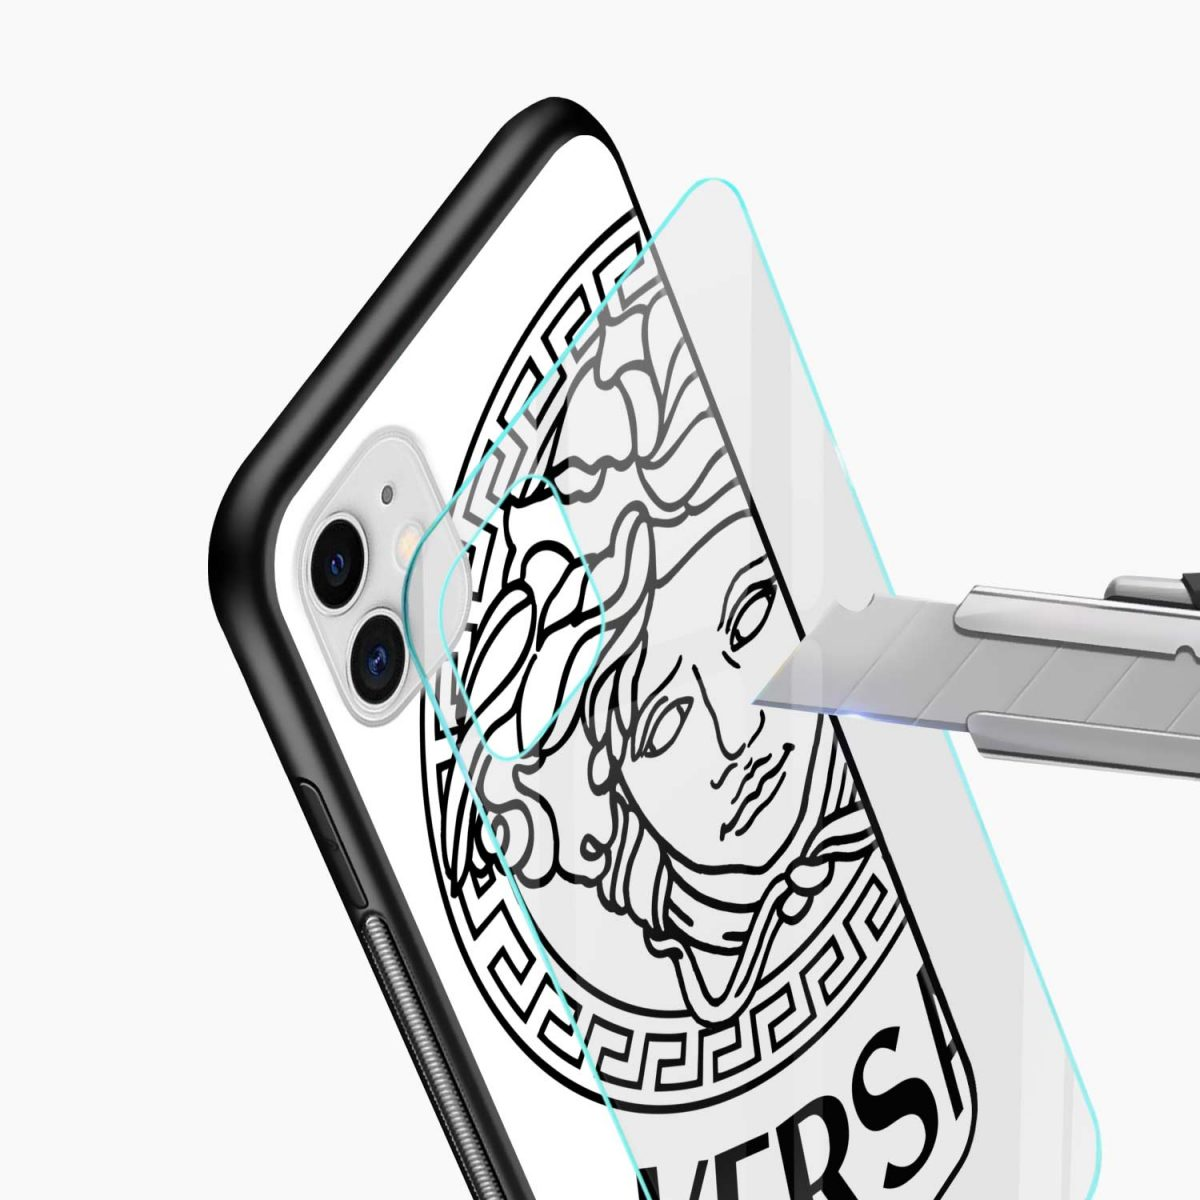 versace black white iphone back cover glass view